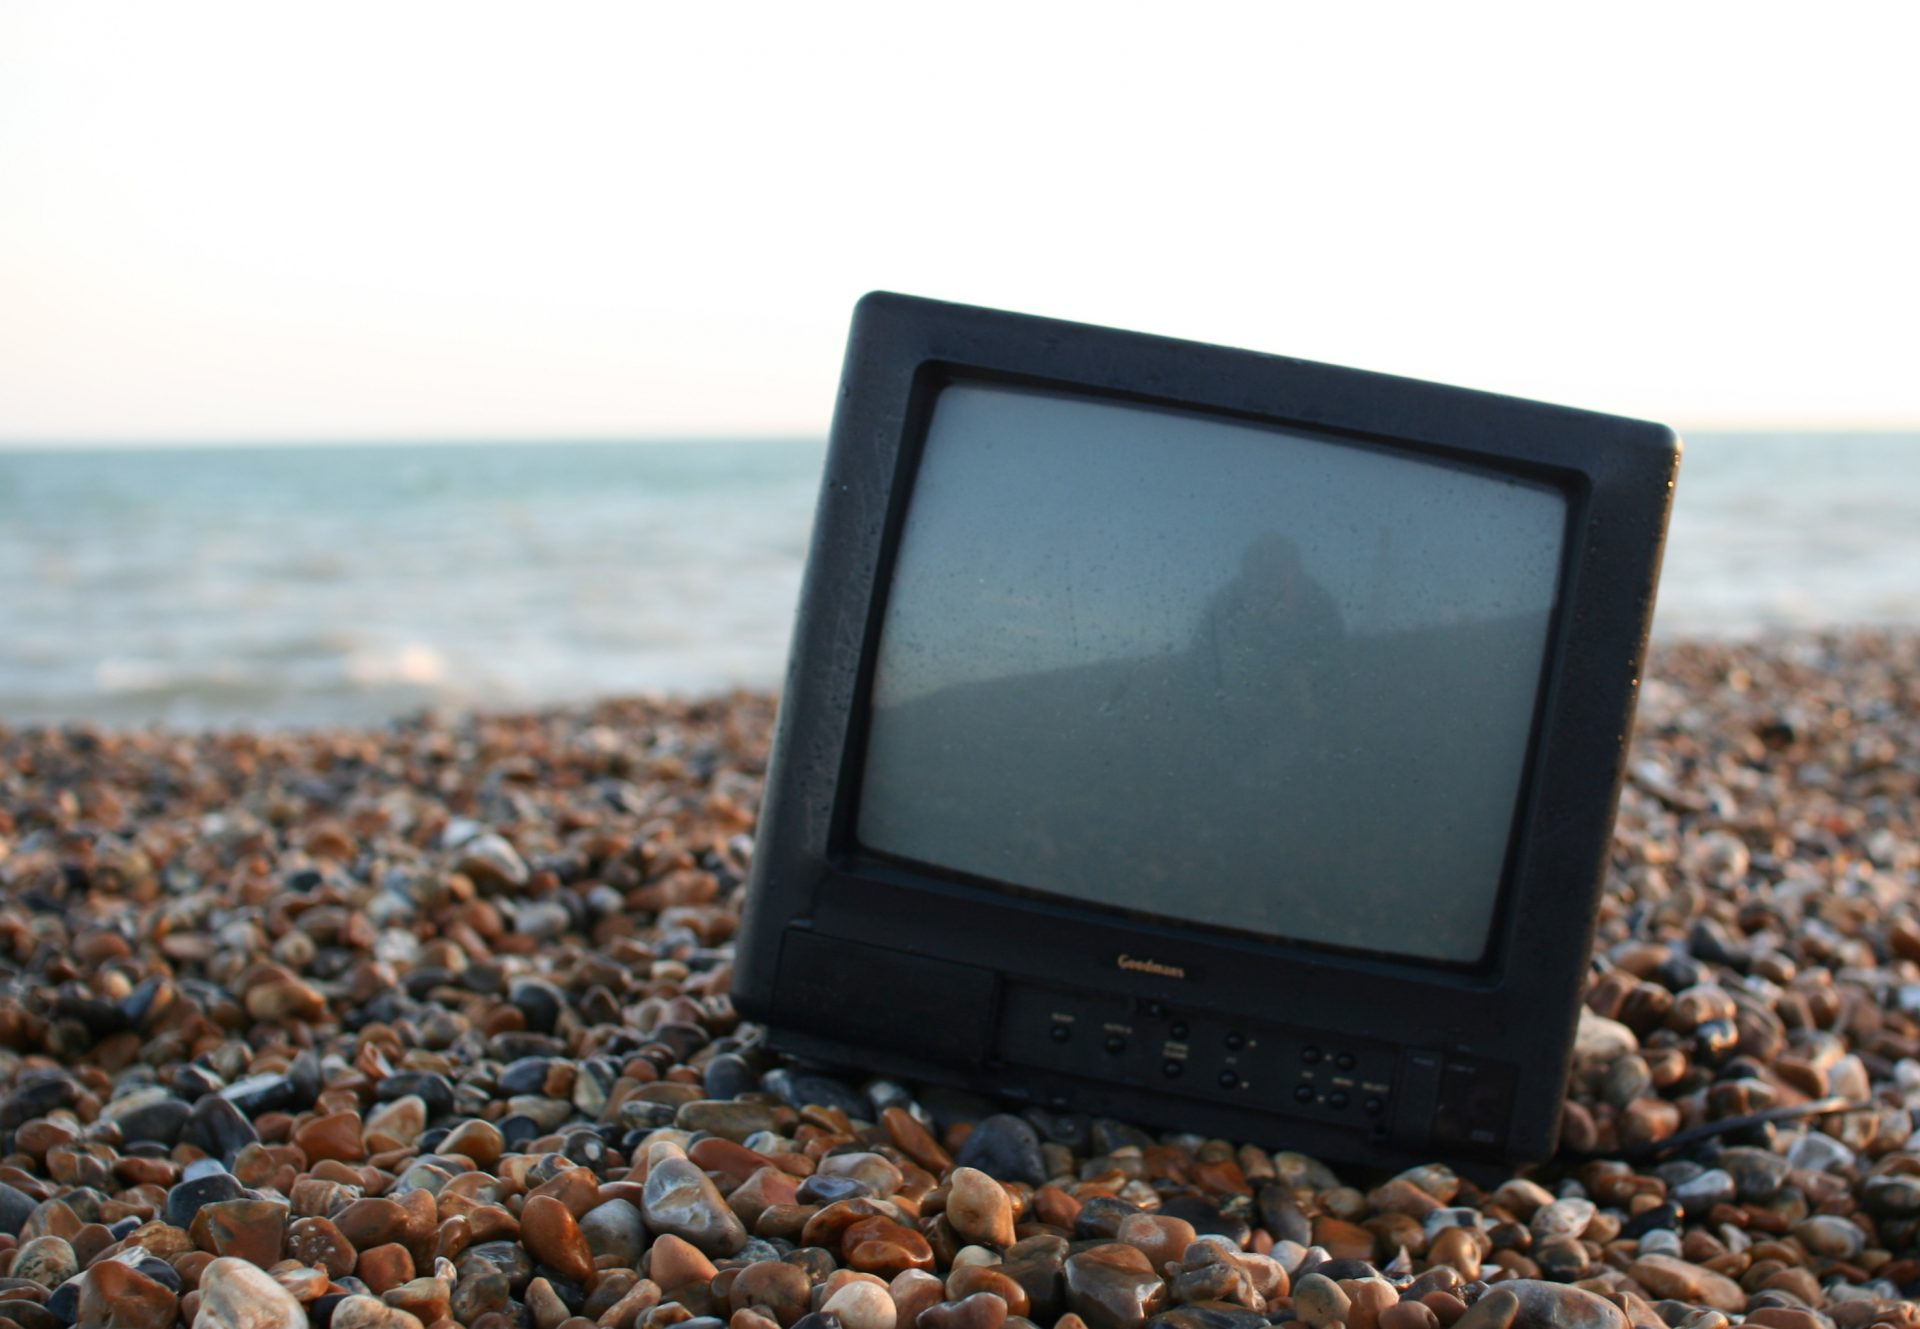 Beach telly by Jonas Bengtsson on Flickr. Used under Creative Commons licence.